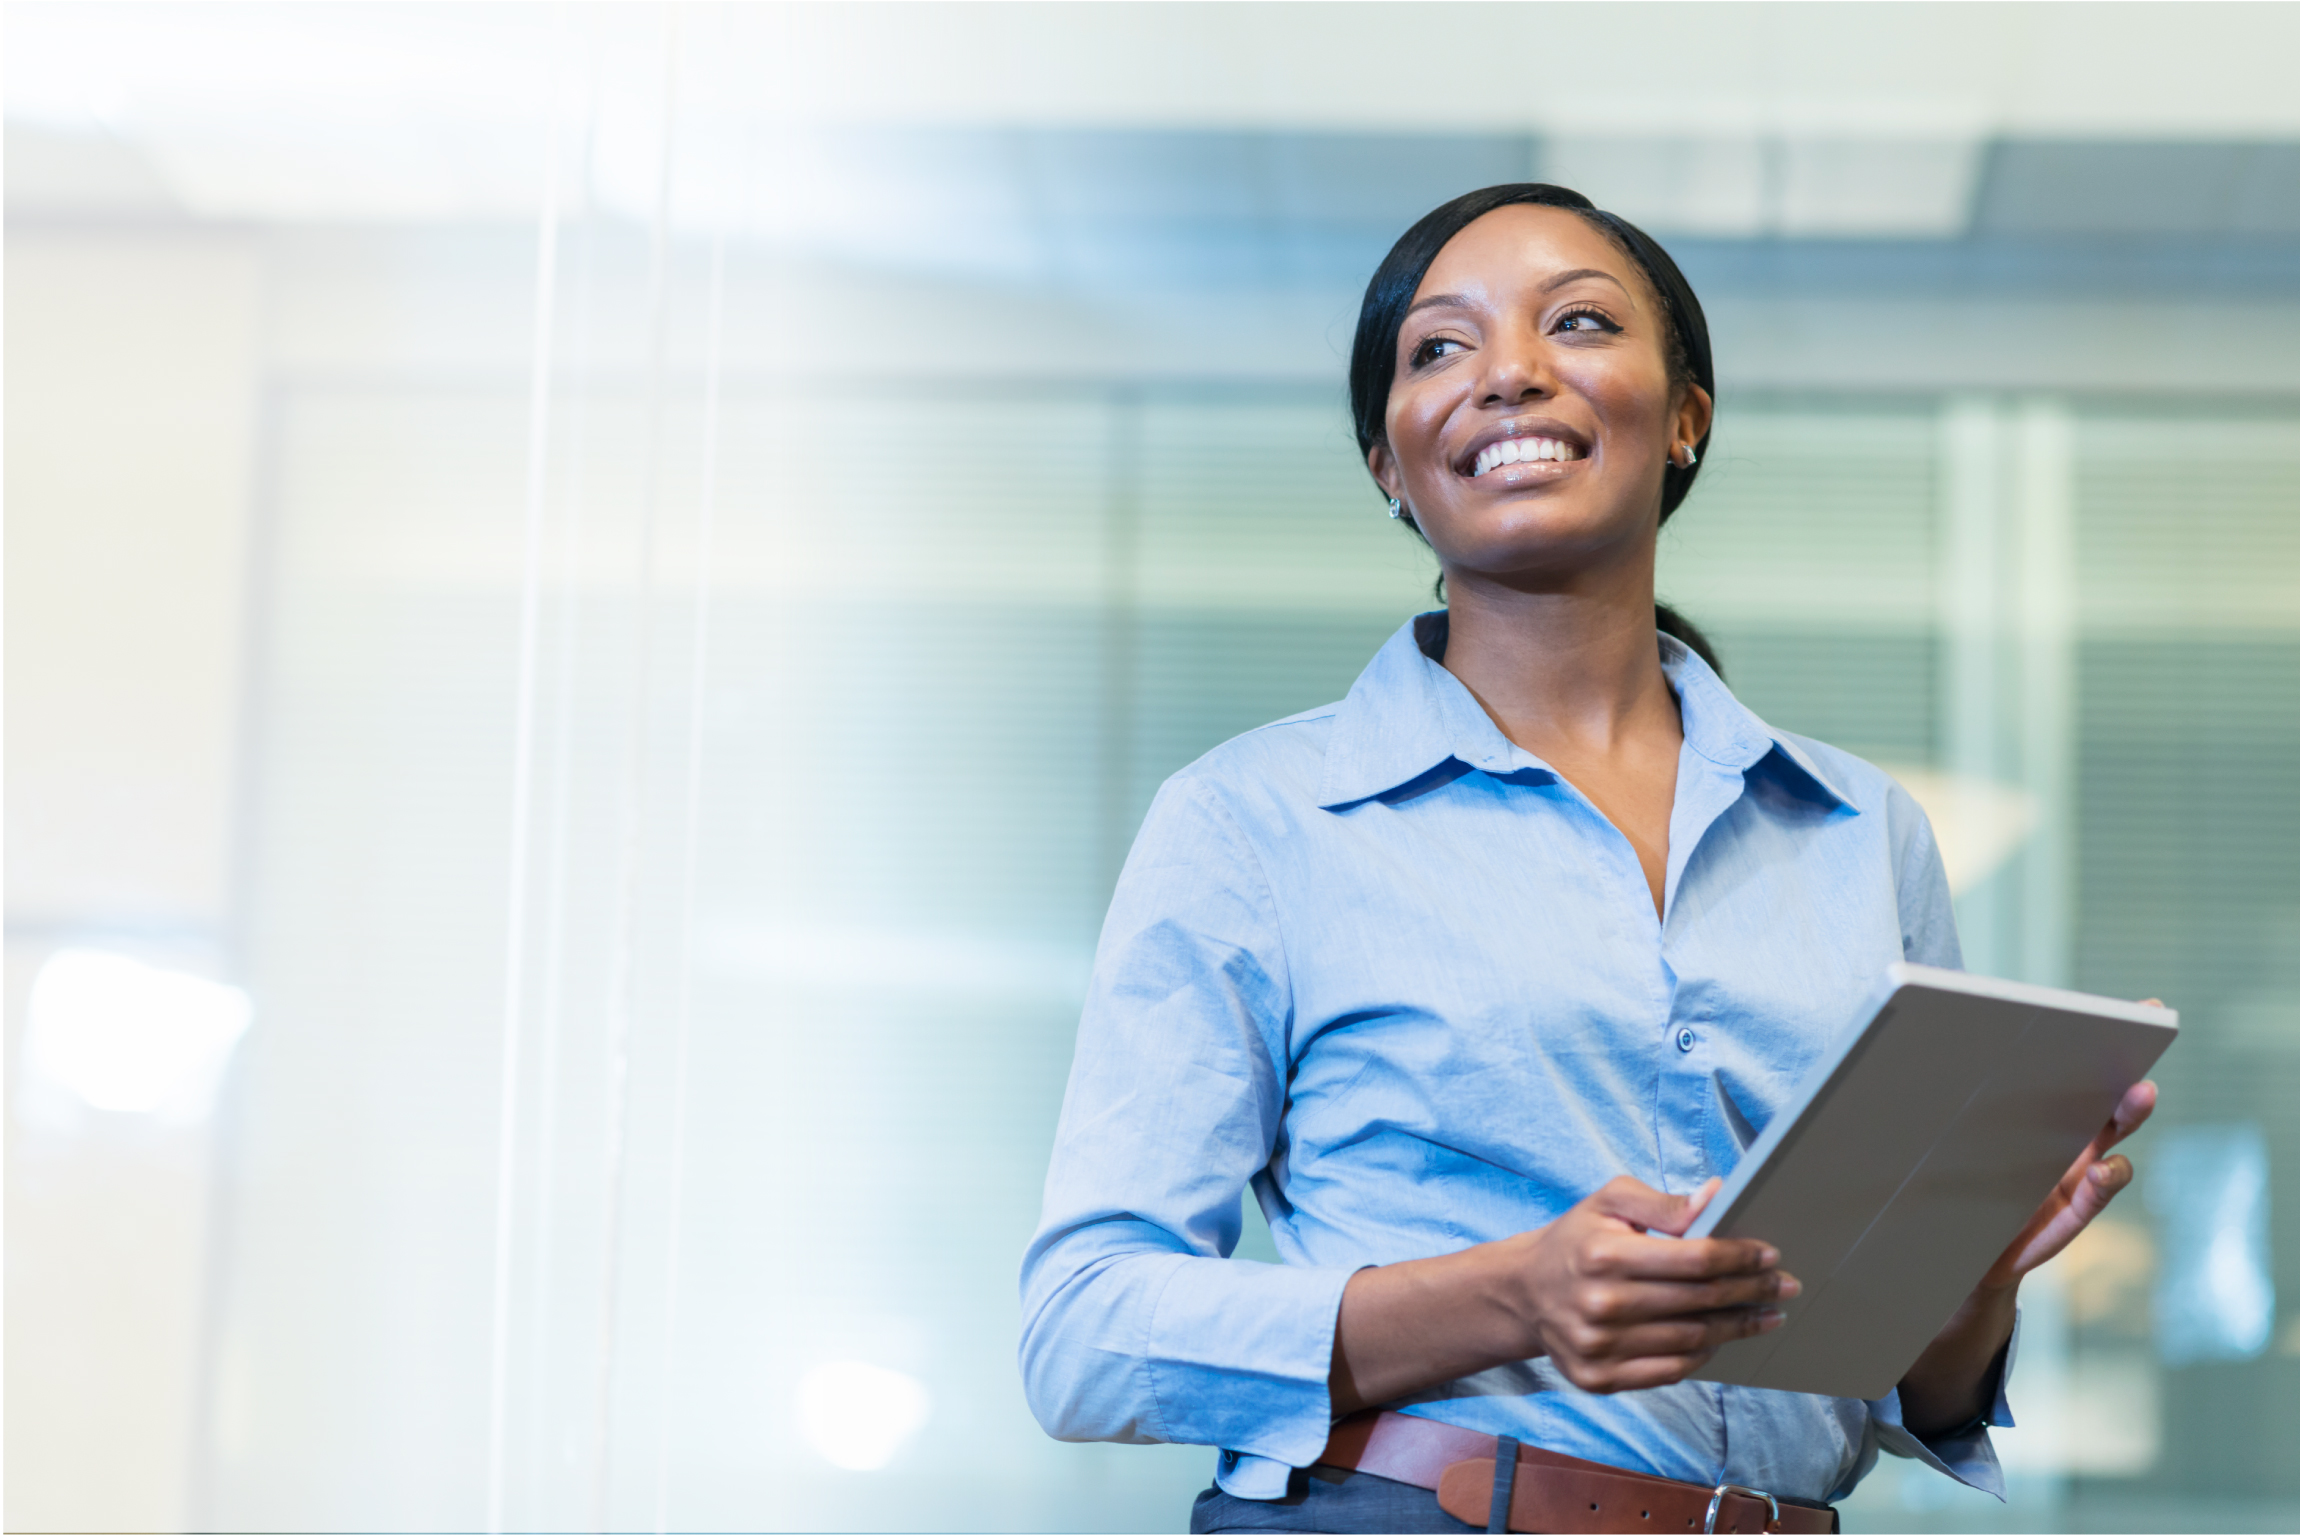 Woman standing in office smiling